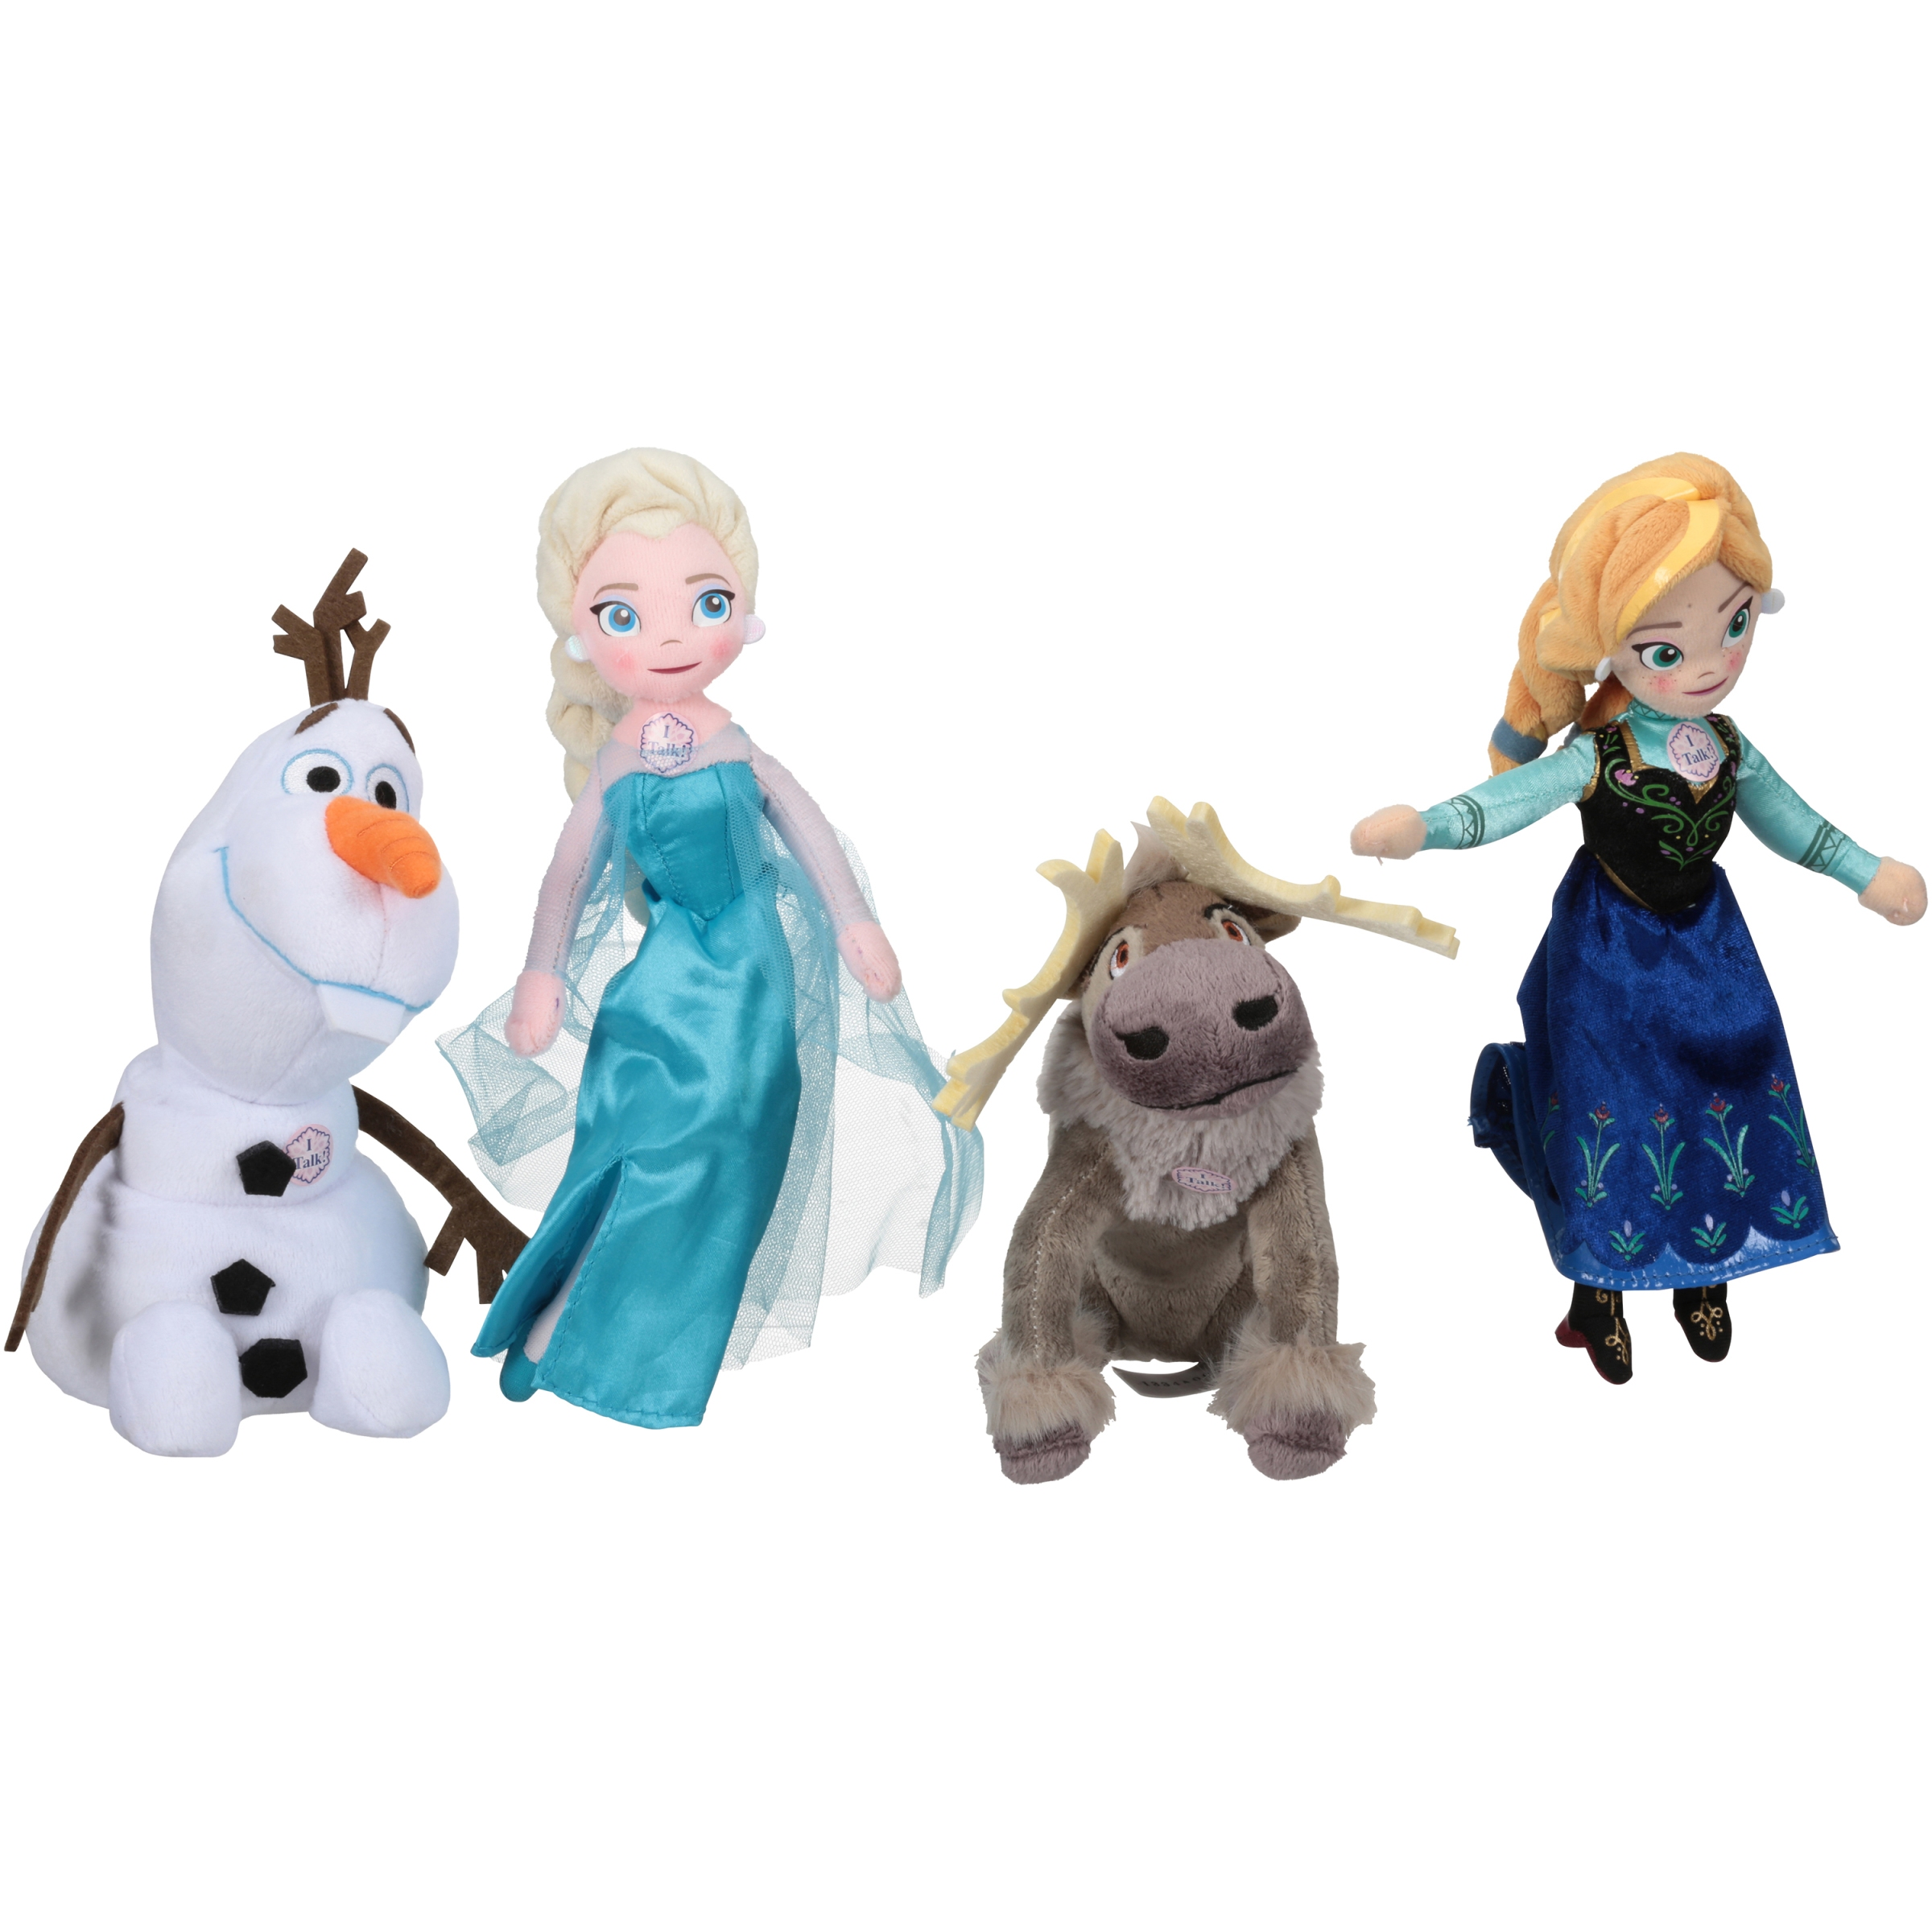 Disney Frozen Talking Plush Bean Elsa/Anna/Olaf/Sven Dolls 4 ct Box